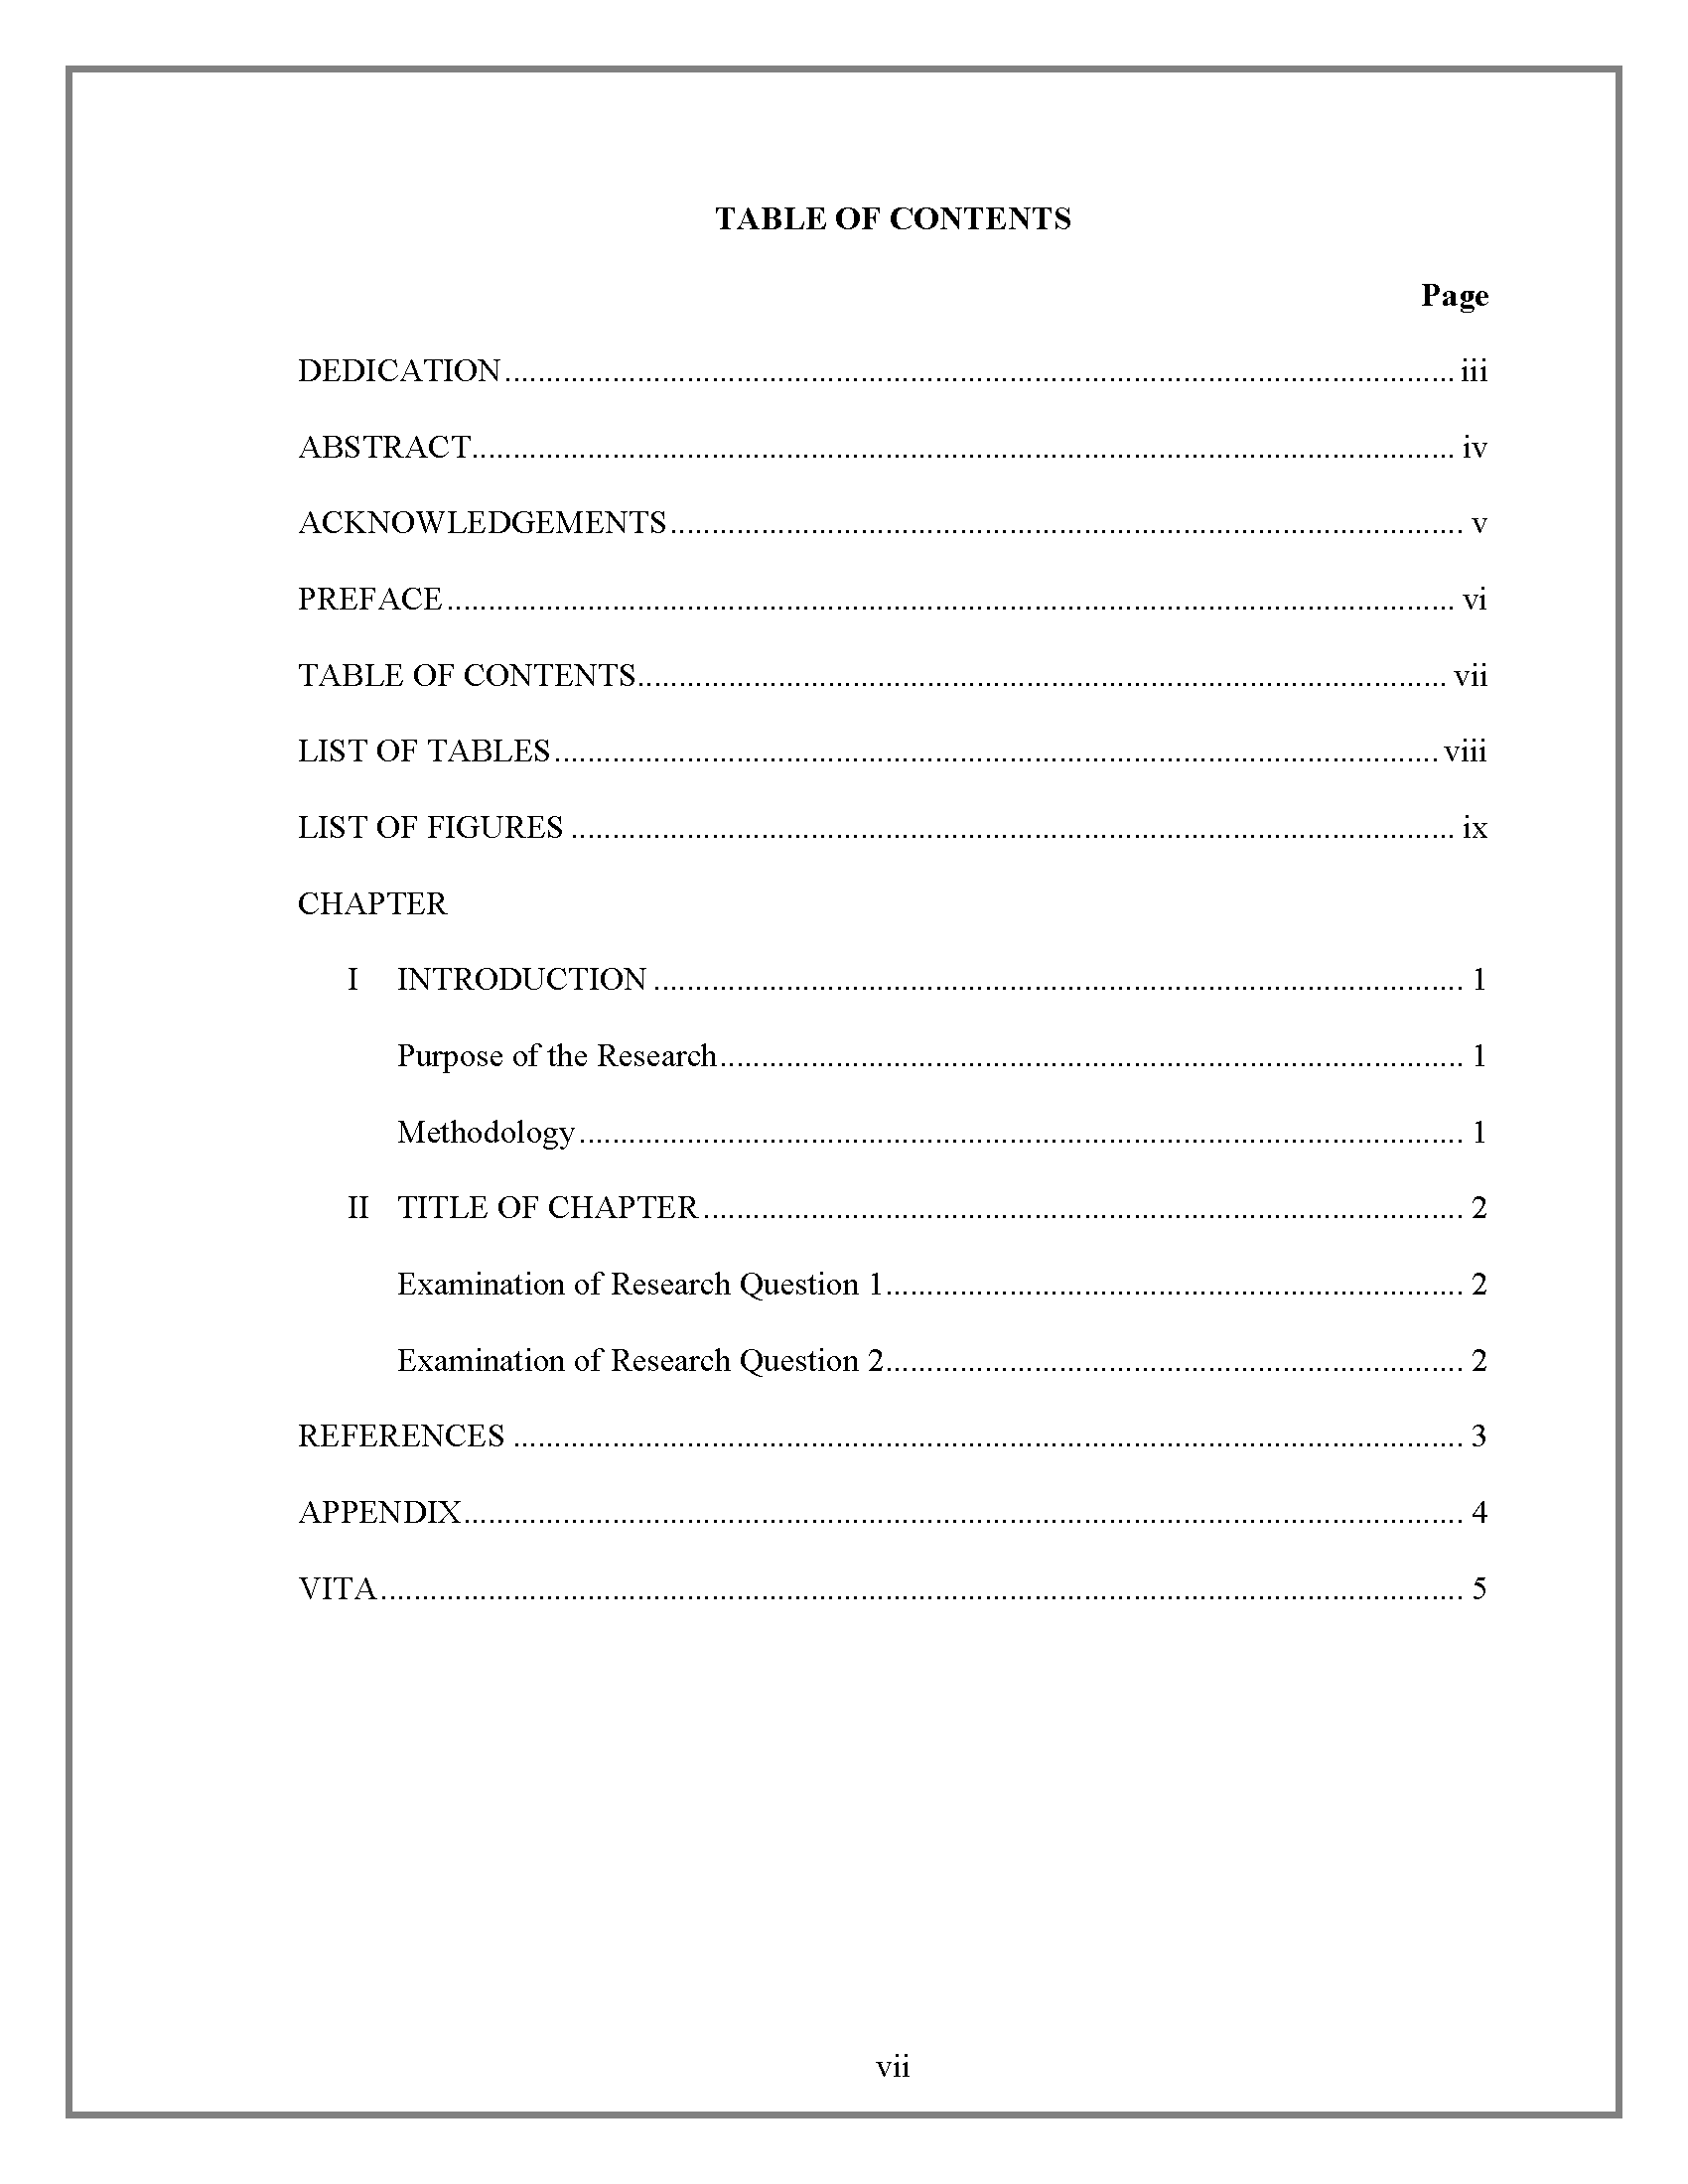 013 Table Of Contentsborder Acknowledgement Example For Research Rare Paper Pdf Full